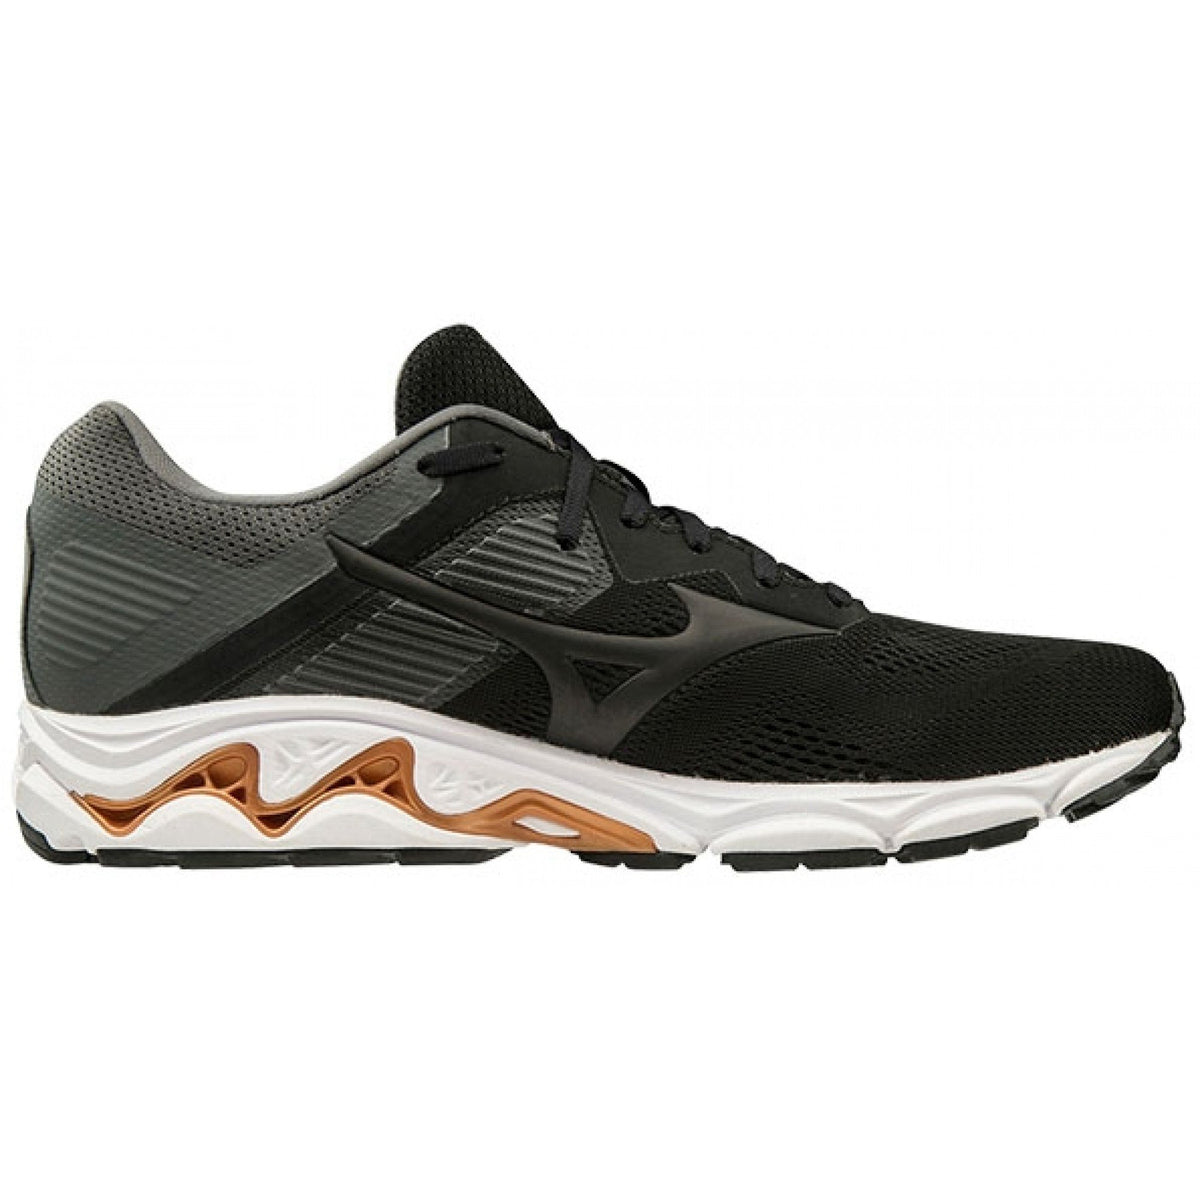 Mizuno Wave Inspire 16 Mens - Sole Motive